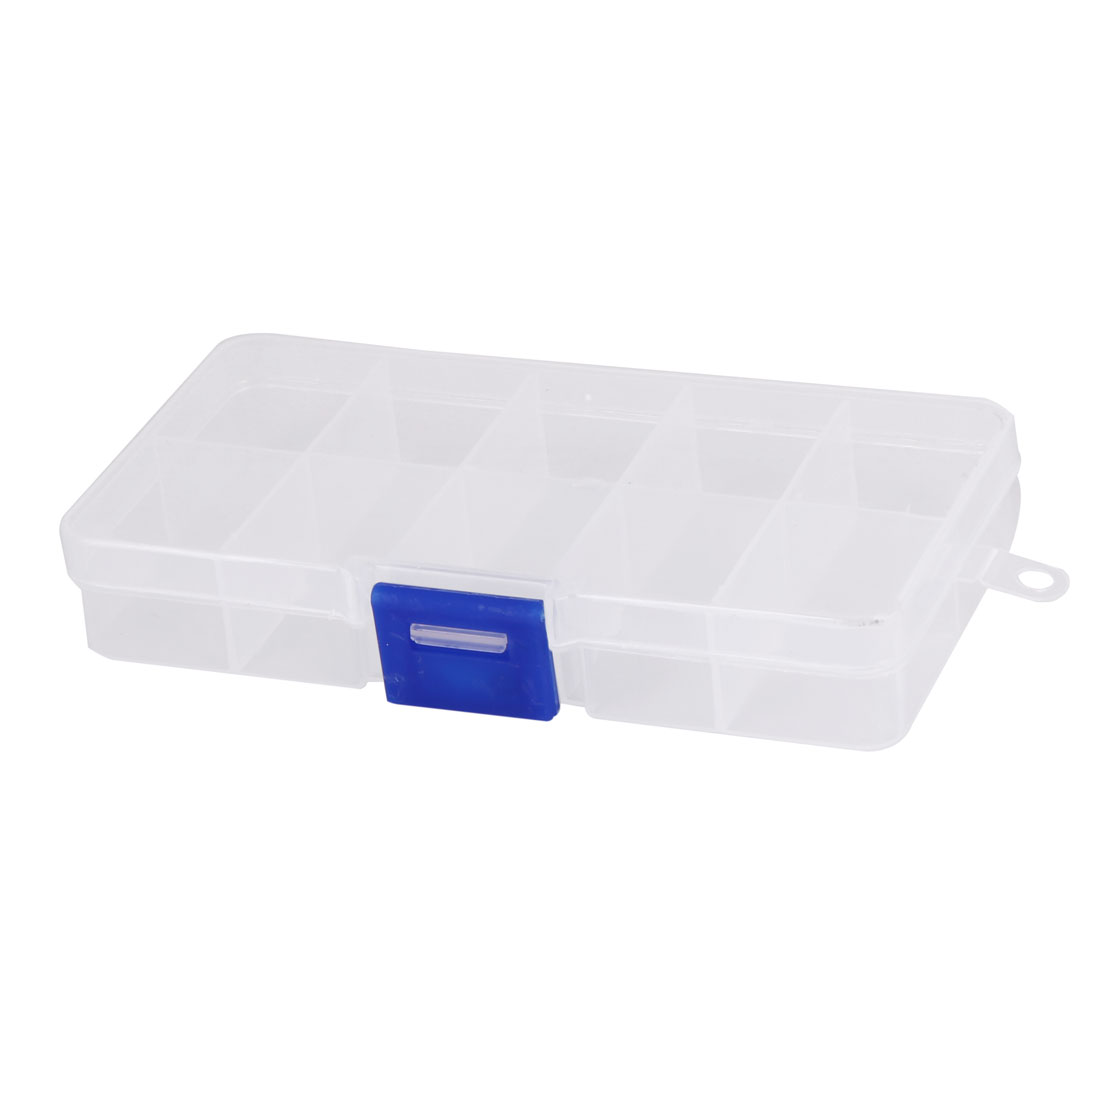 Family Plastic 10 Compartments Pills Capsule Cosmetics Storage Box Case Blue Clear